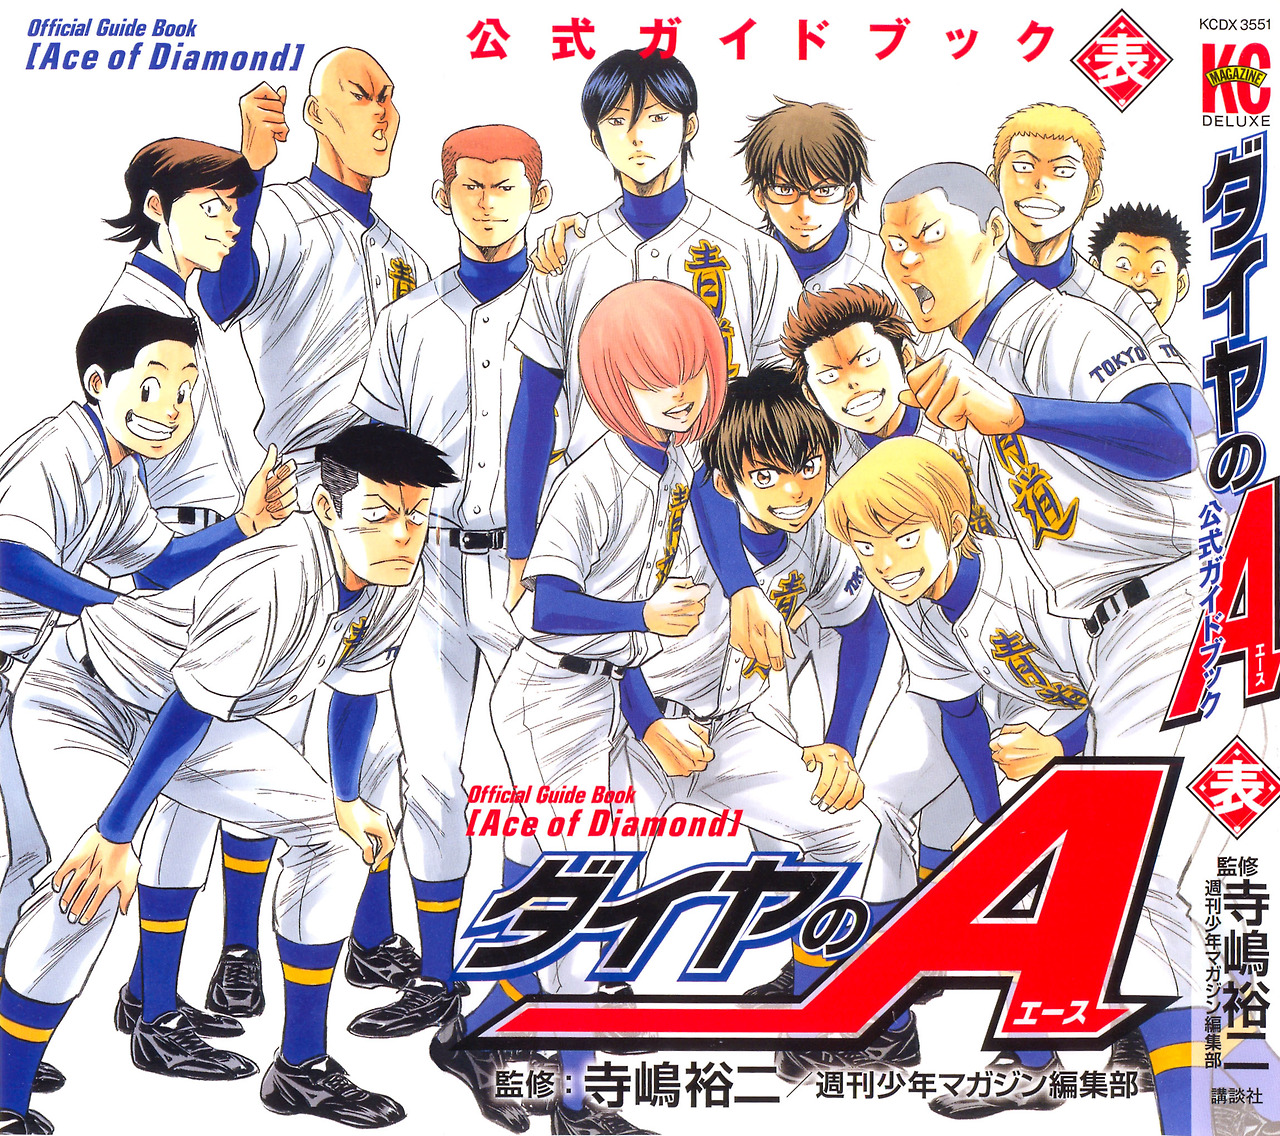 Daiya No Ace Ace Of Diamond Images Diamond No Ace: Diamond No Ace Wiki